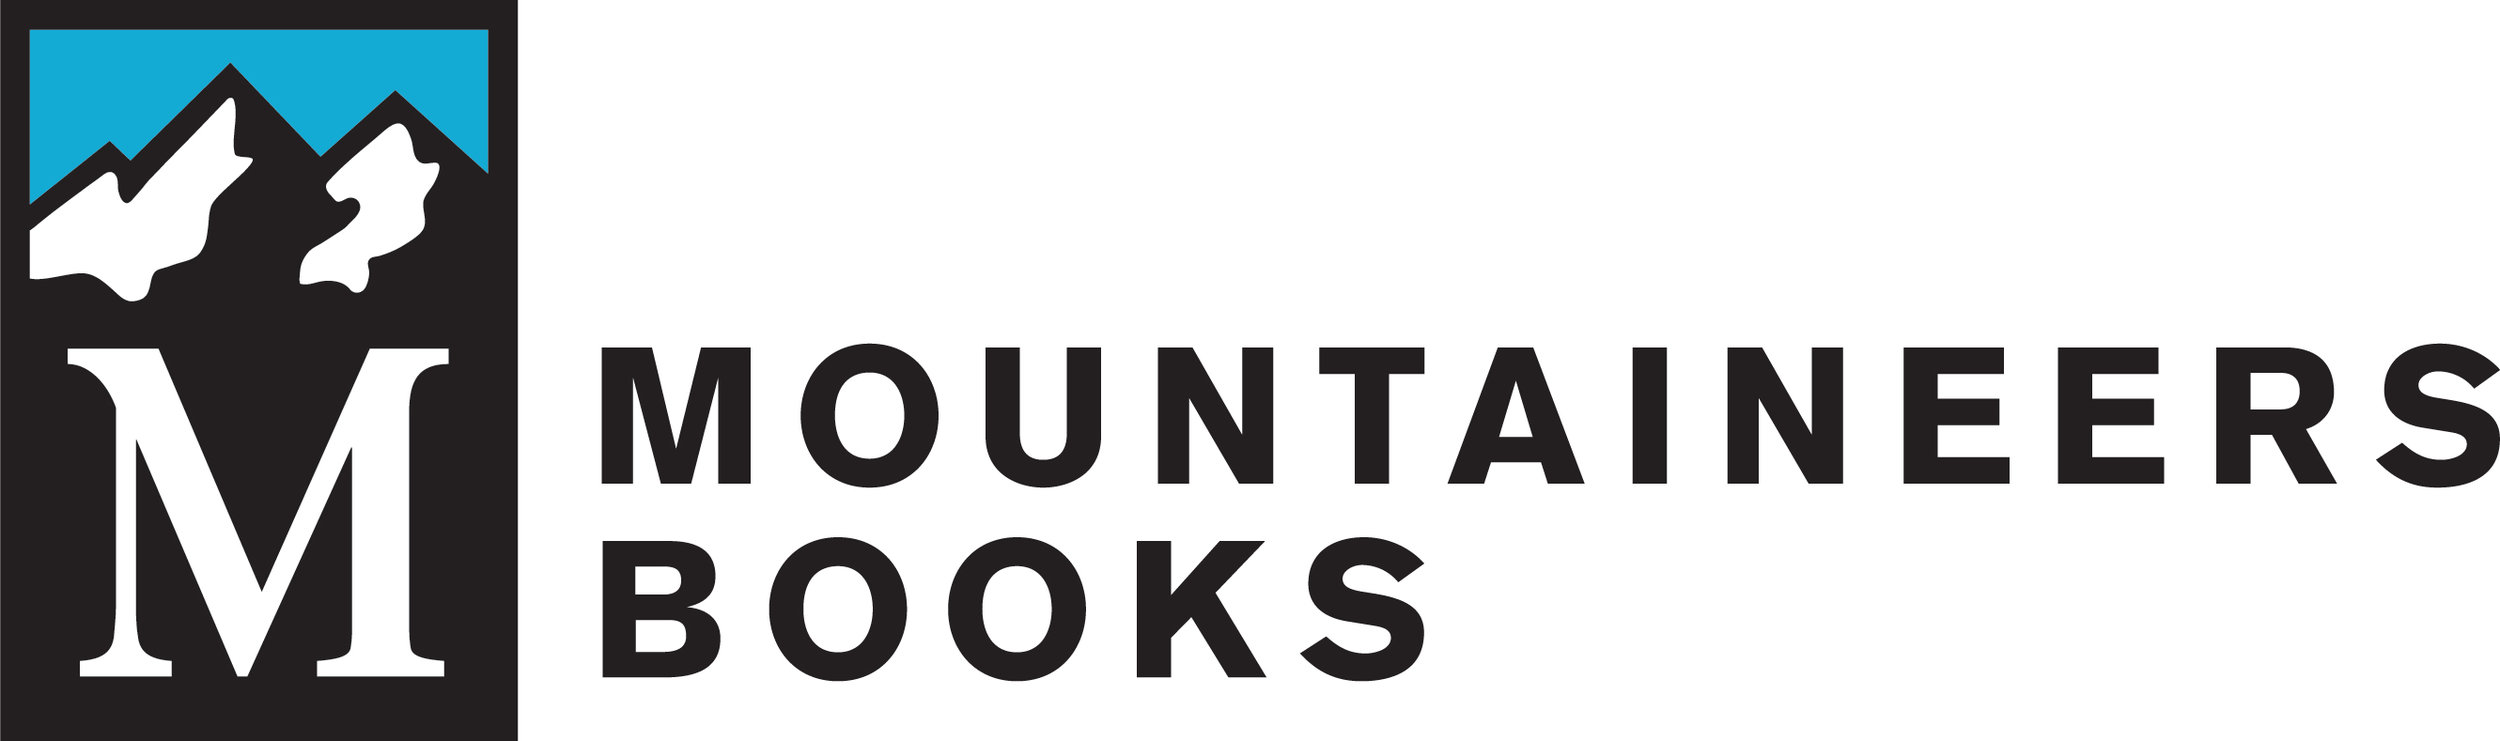 MountaineersBooks_Logo_2017_Outline.jpg